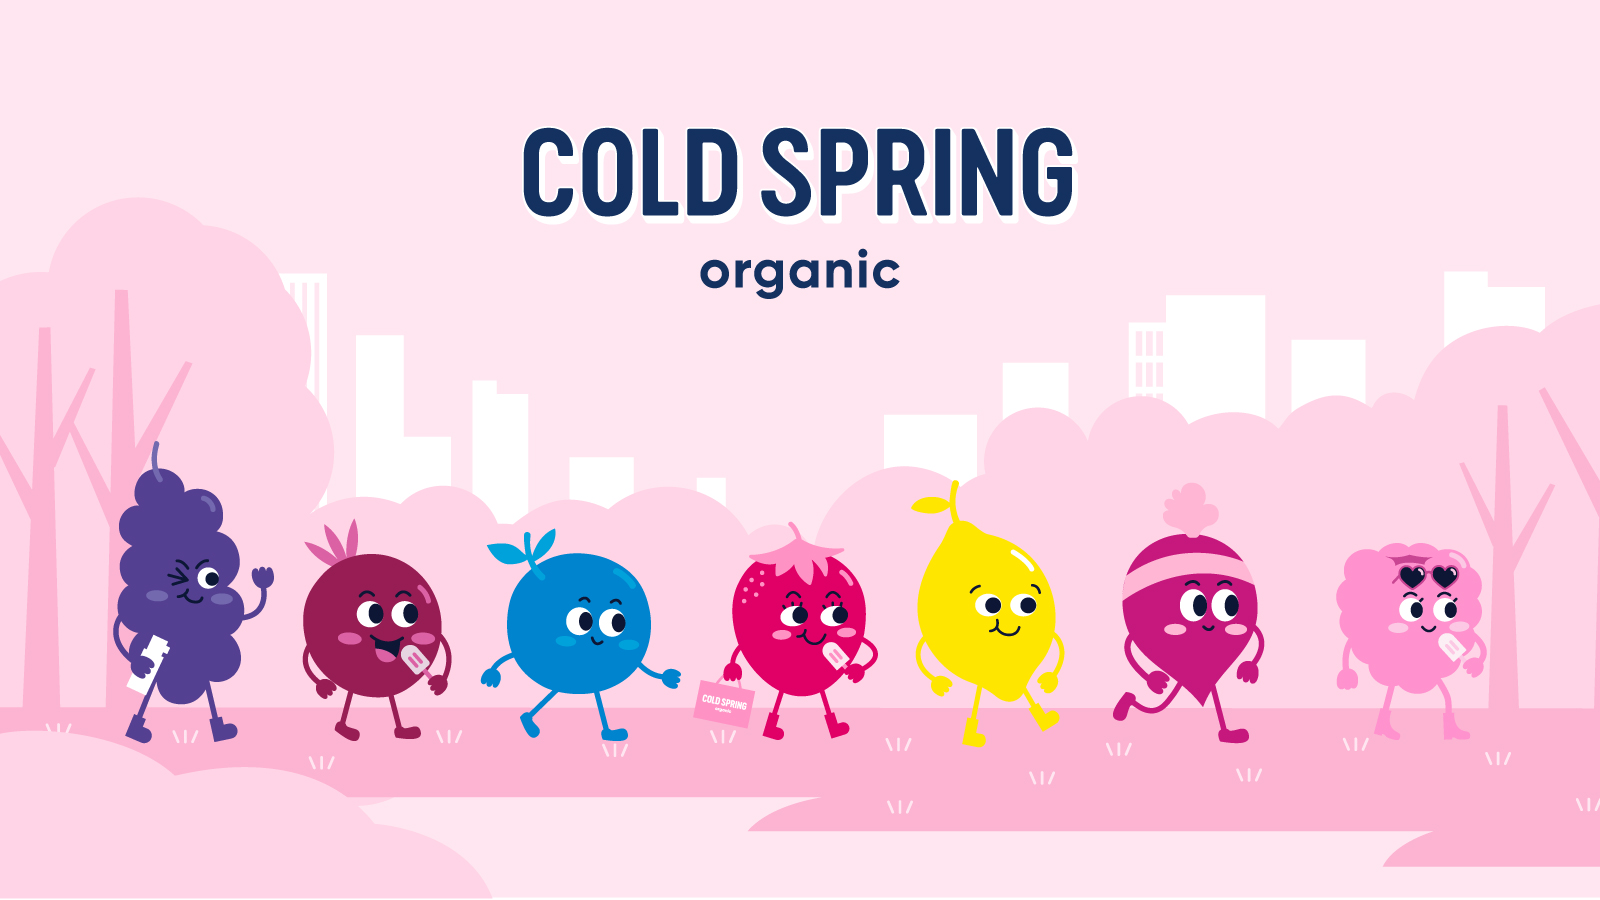 Cold Spring Organic Popsicle Brand Identity and Packaging Design